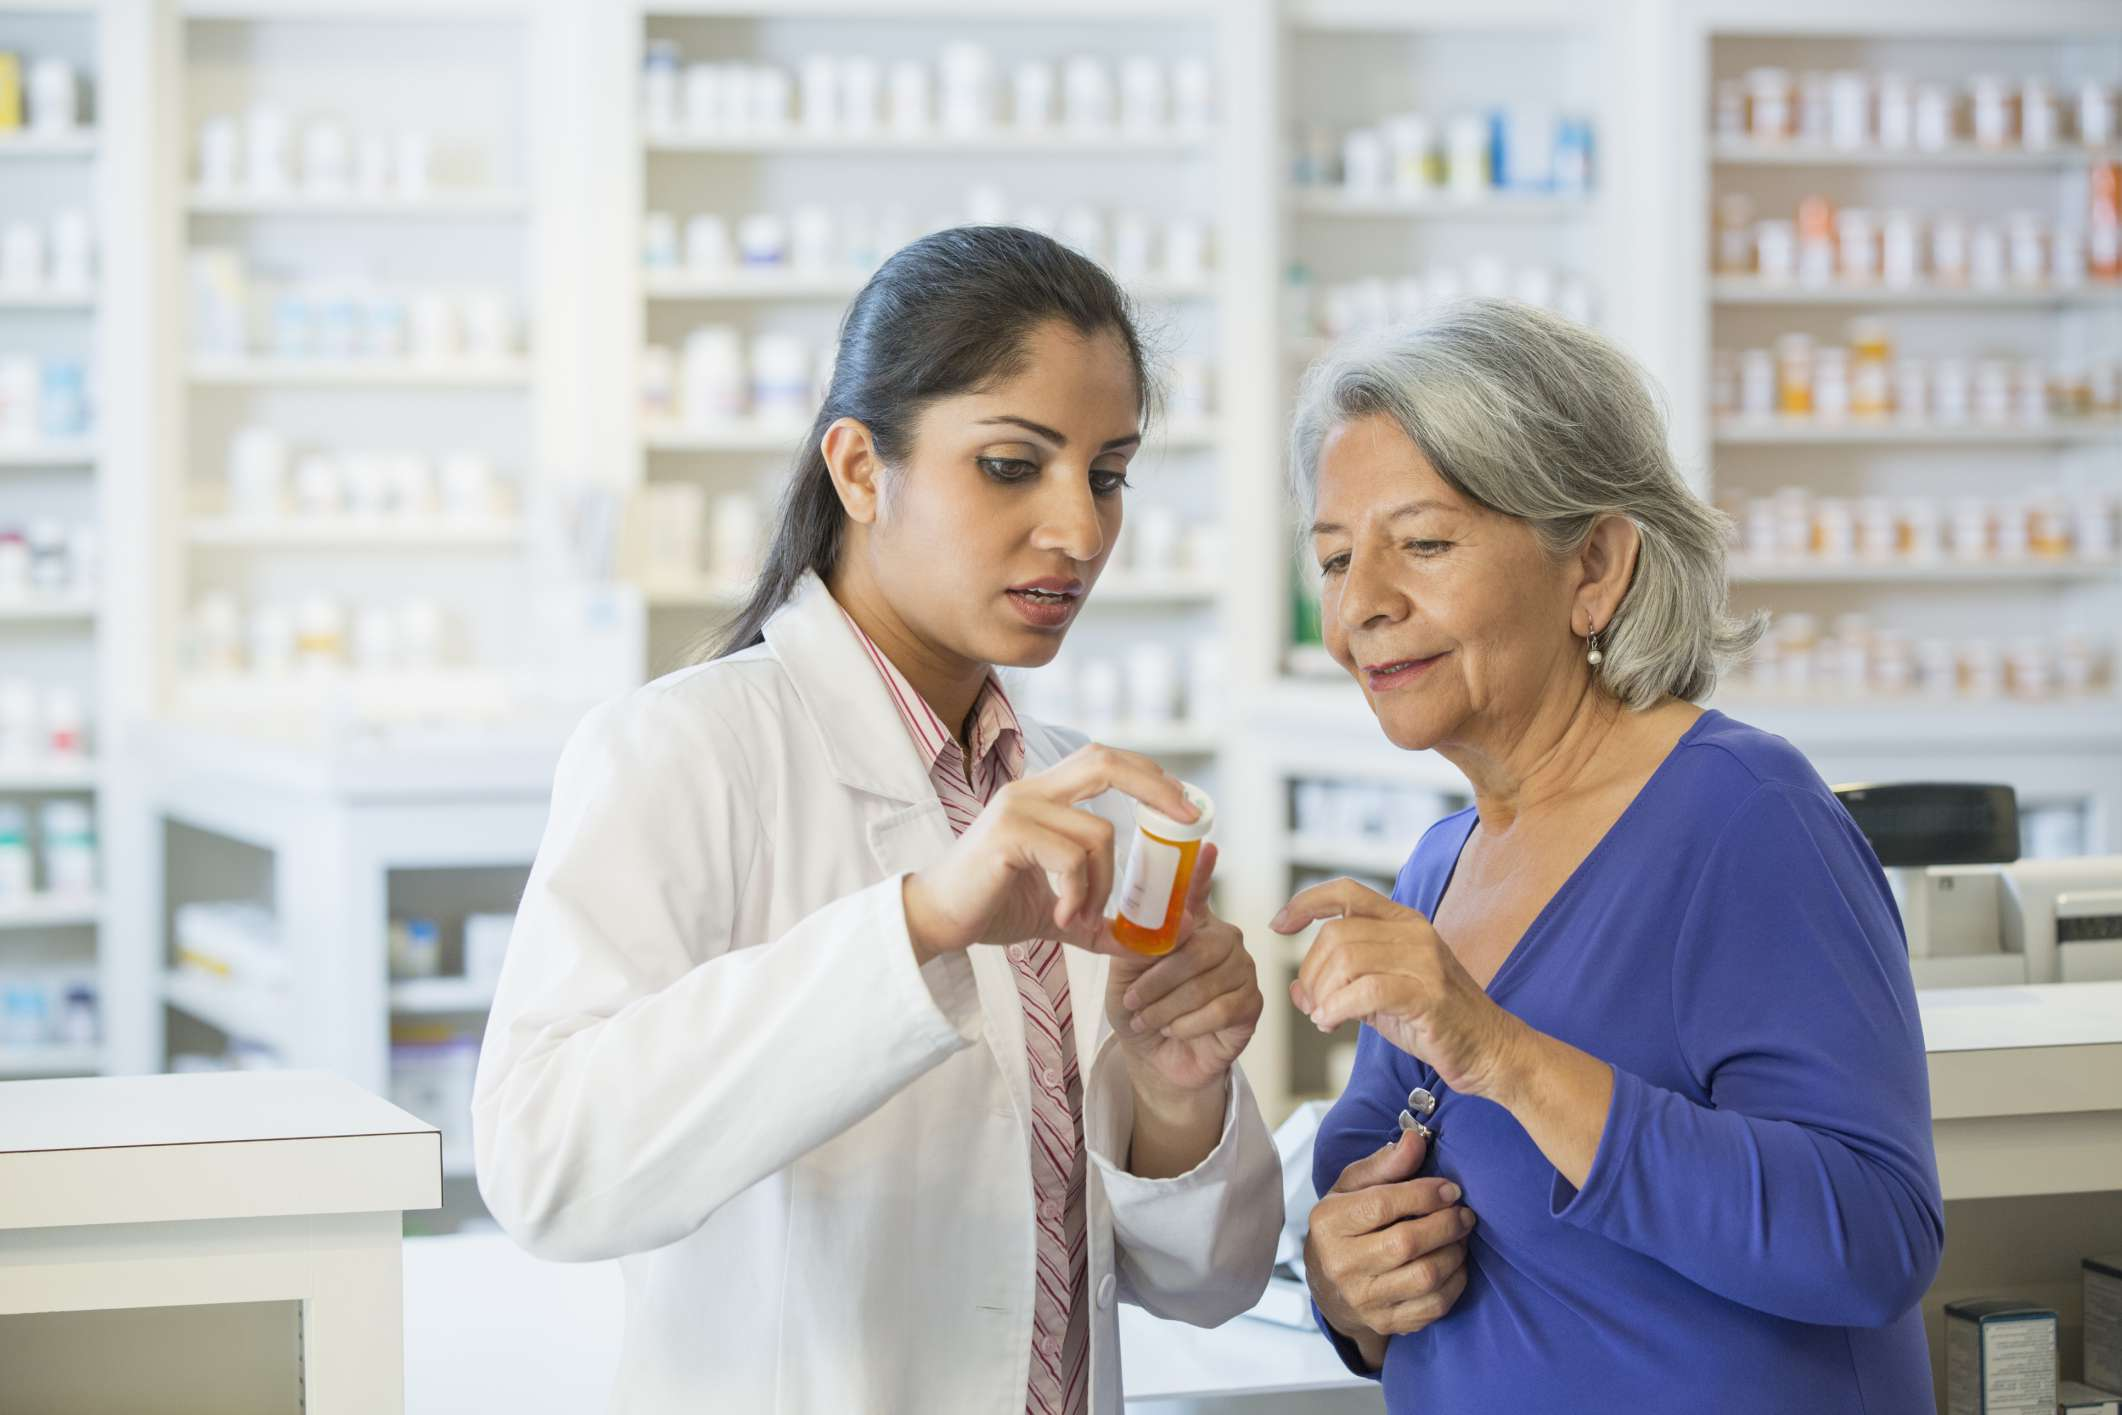 Pharmacist going over prescription label with woman